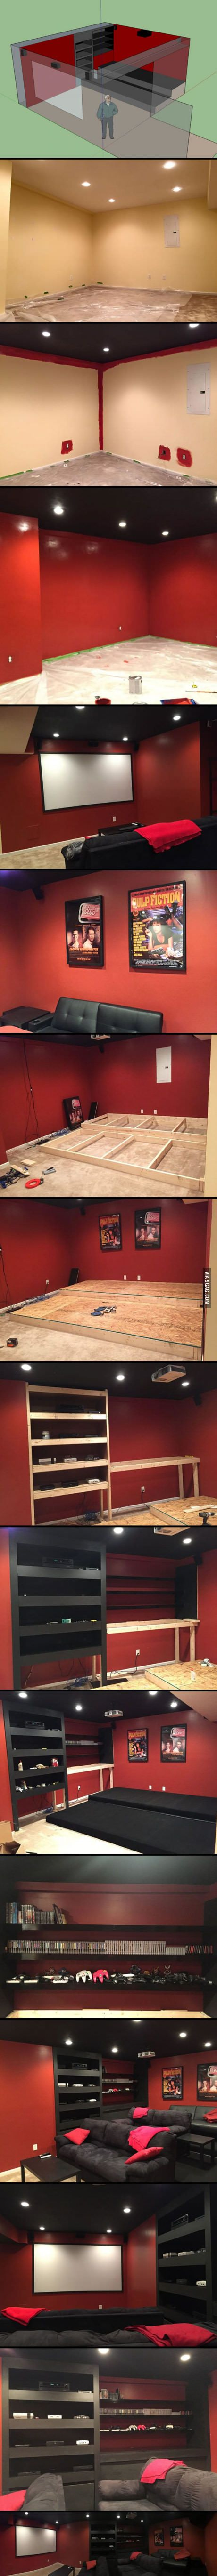 Basement Home Theater Build! [21 PICS]                                                                                                                                                      More